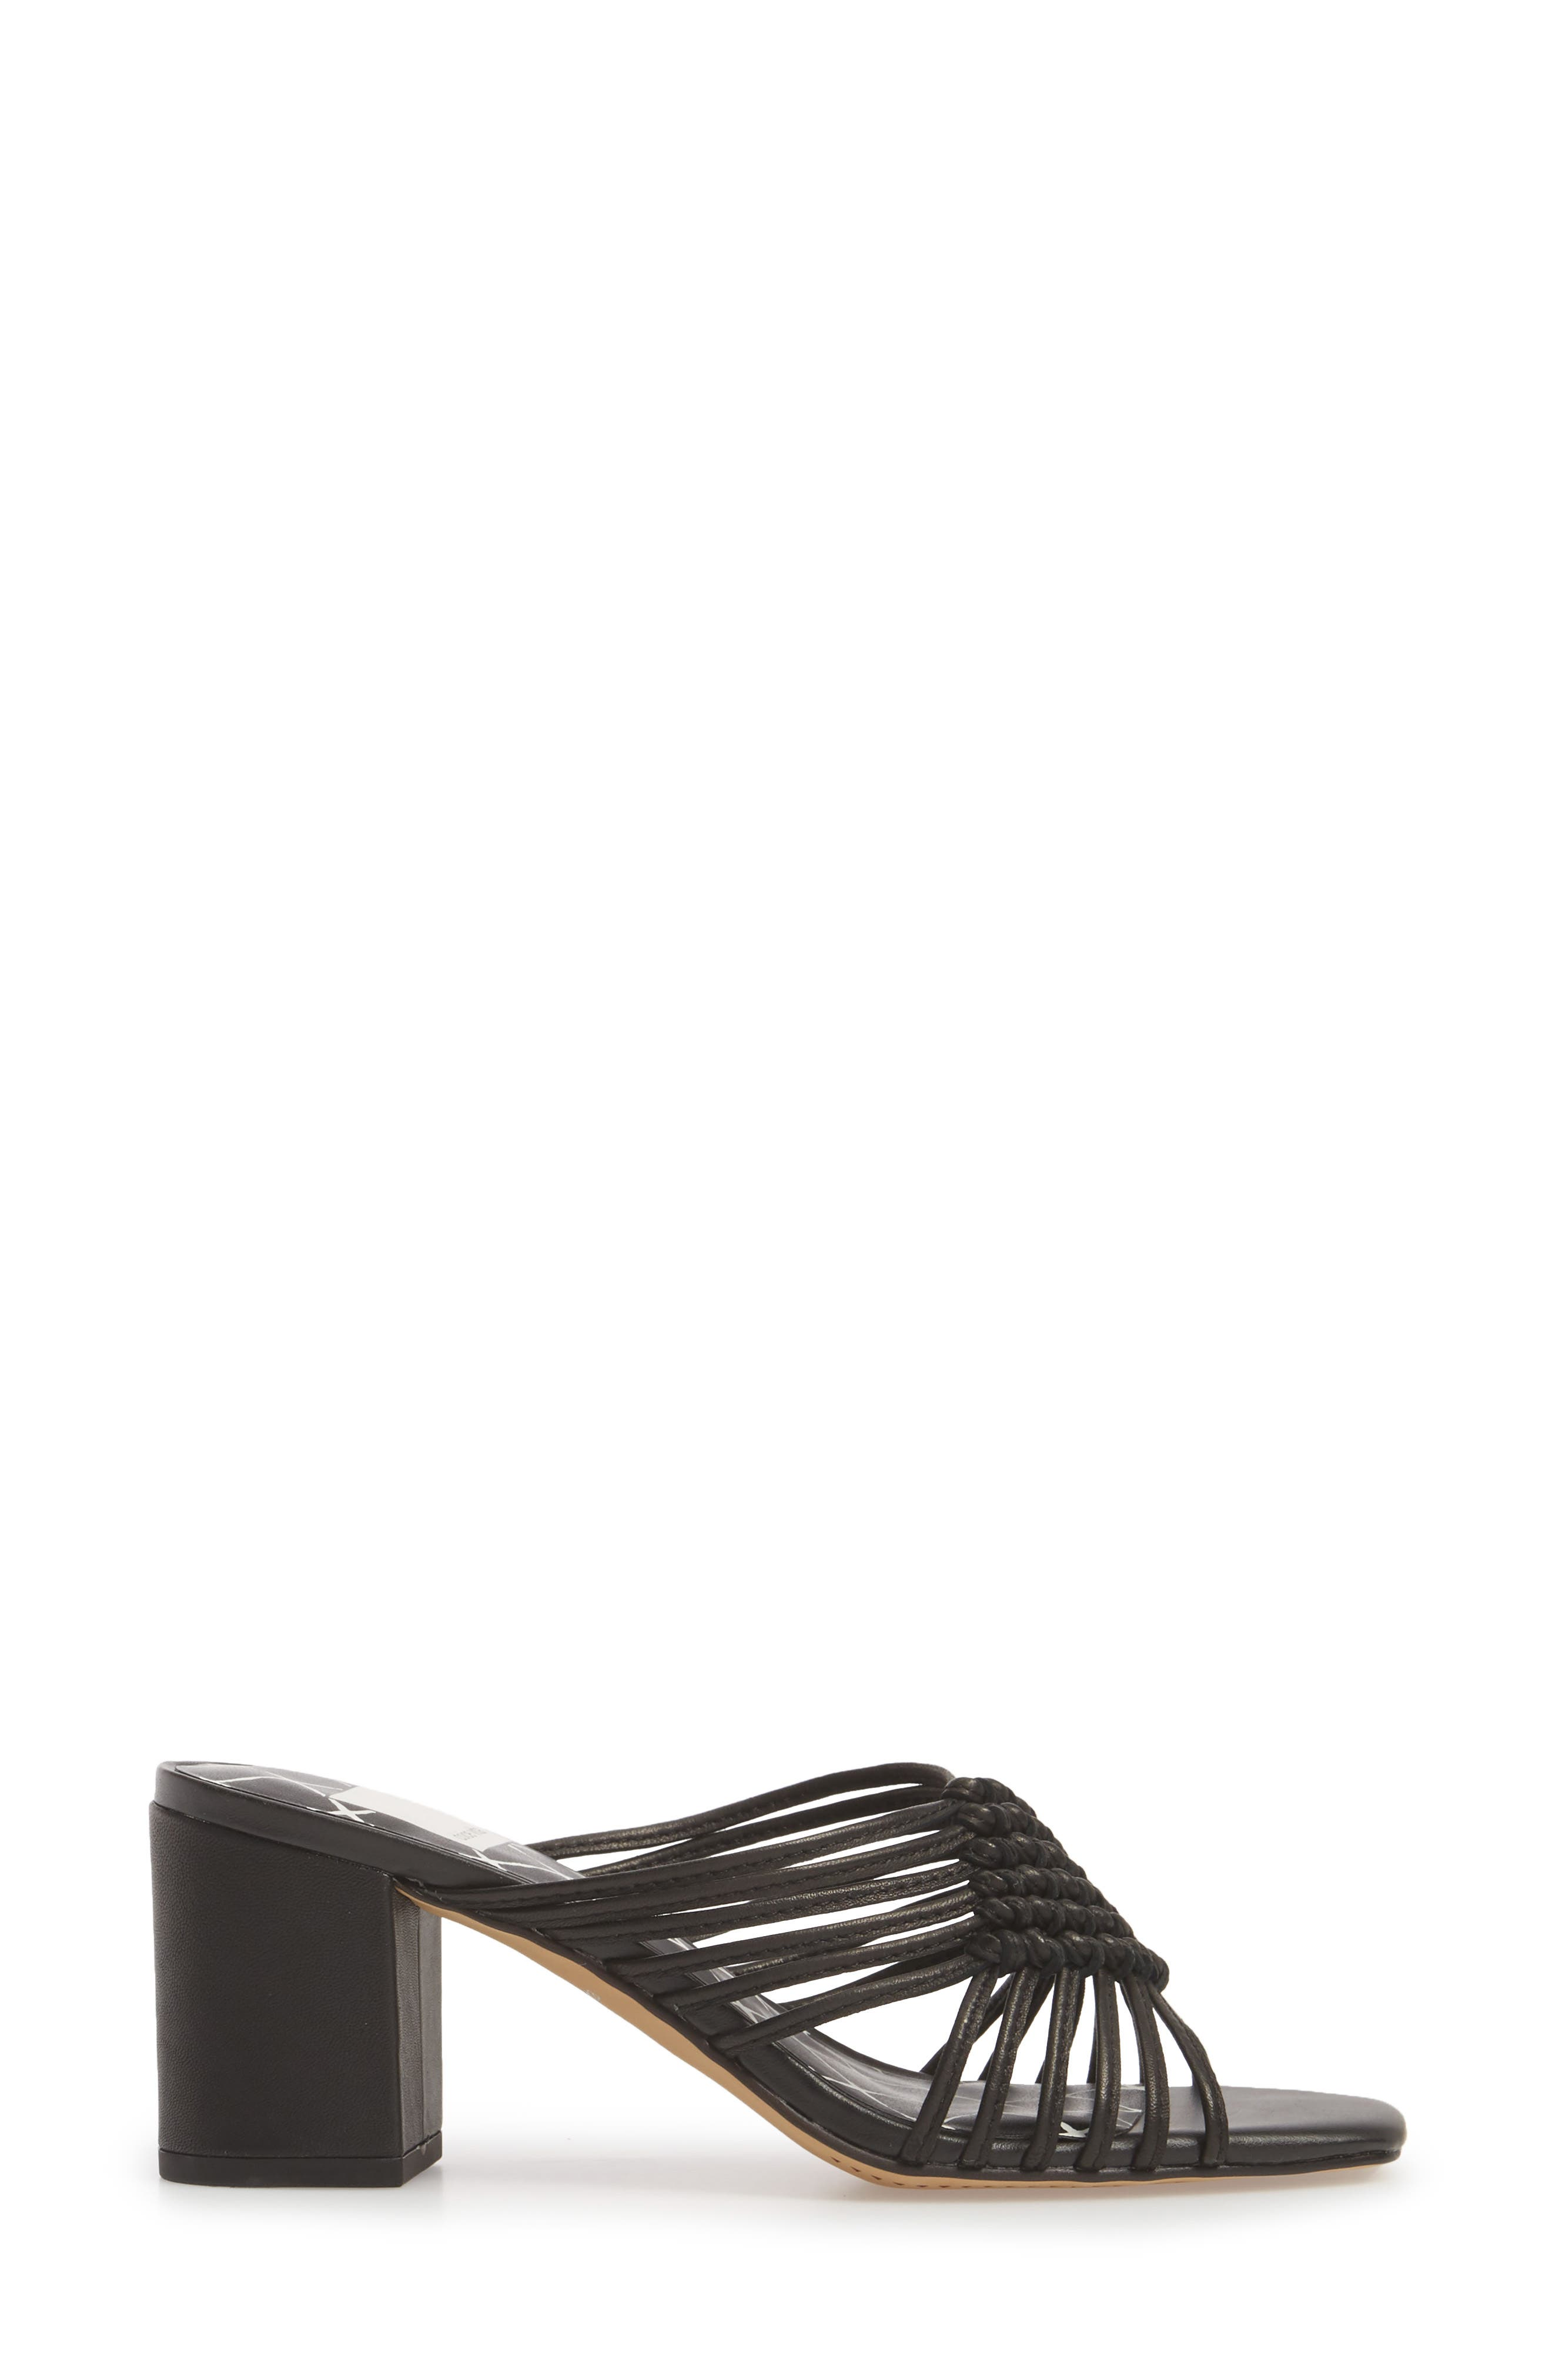 DOLCE VITA,                             Delana Knotted Slide Sandal,                             Alternate thumbnail 3, color,                             001